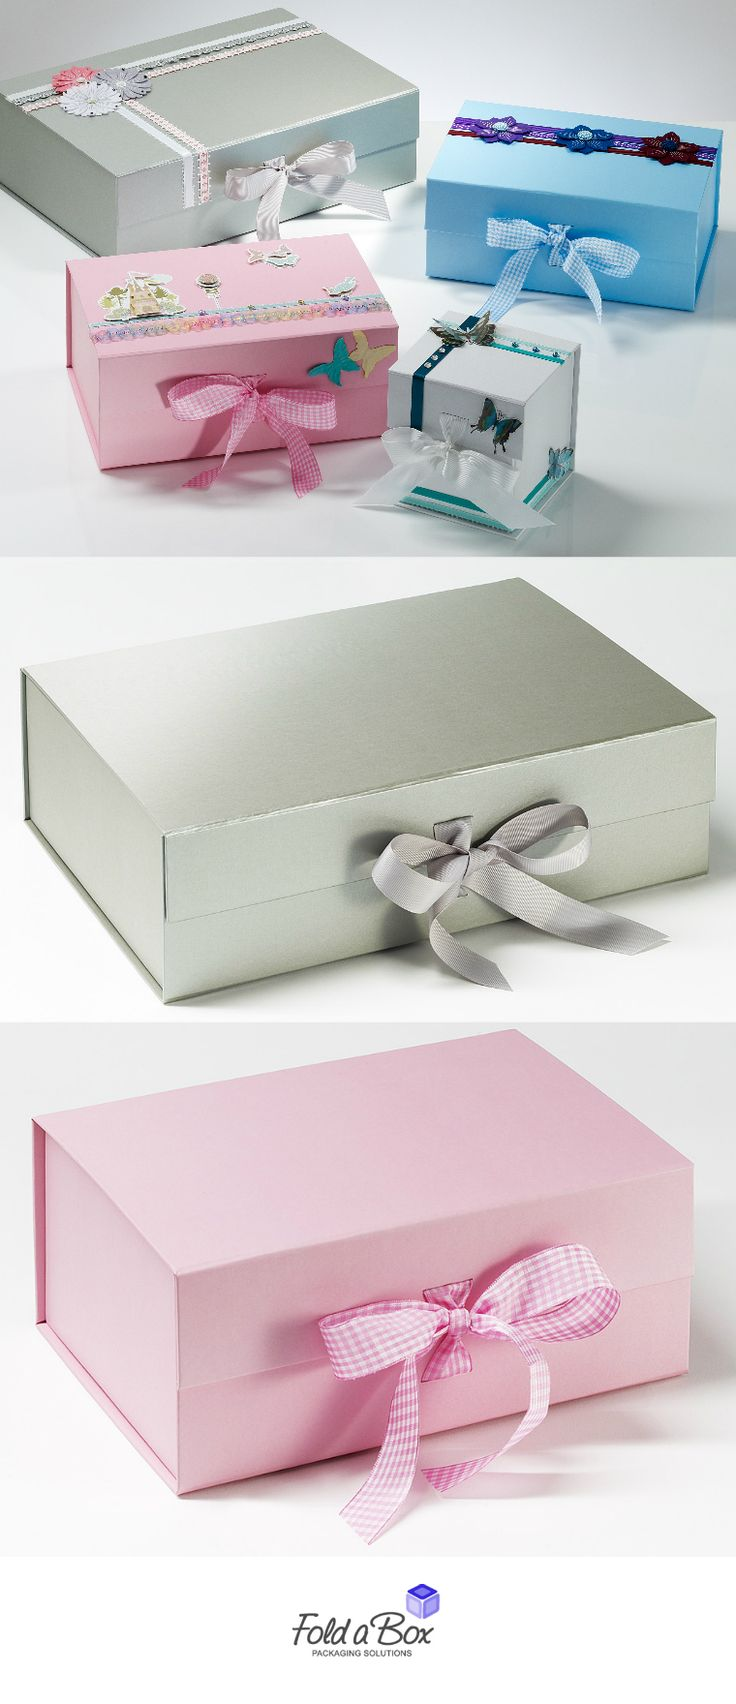 The perfect blank canvas for your own hand crafting ideas. Gift boxes from FAB. www.foldaboxusa.com